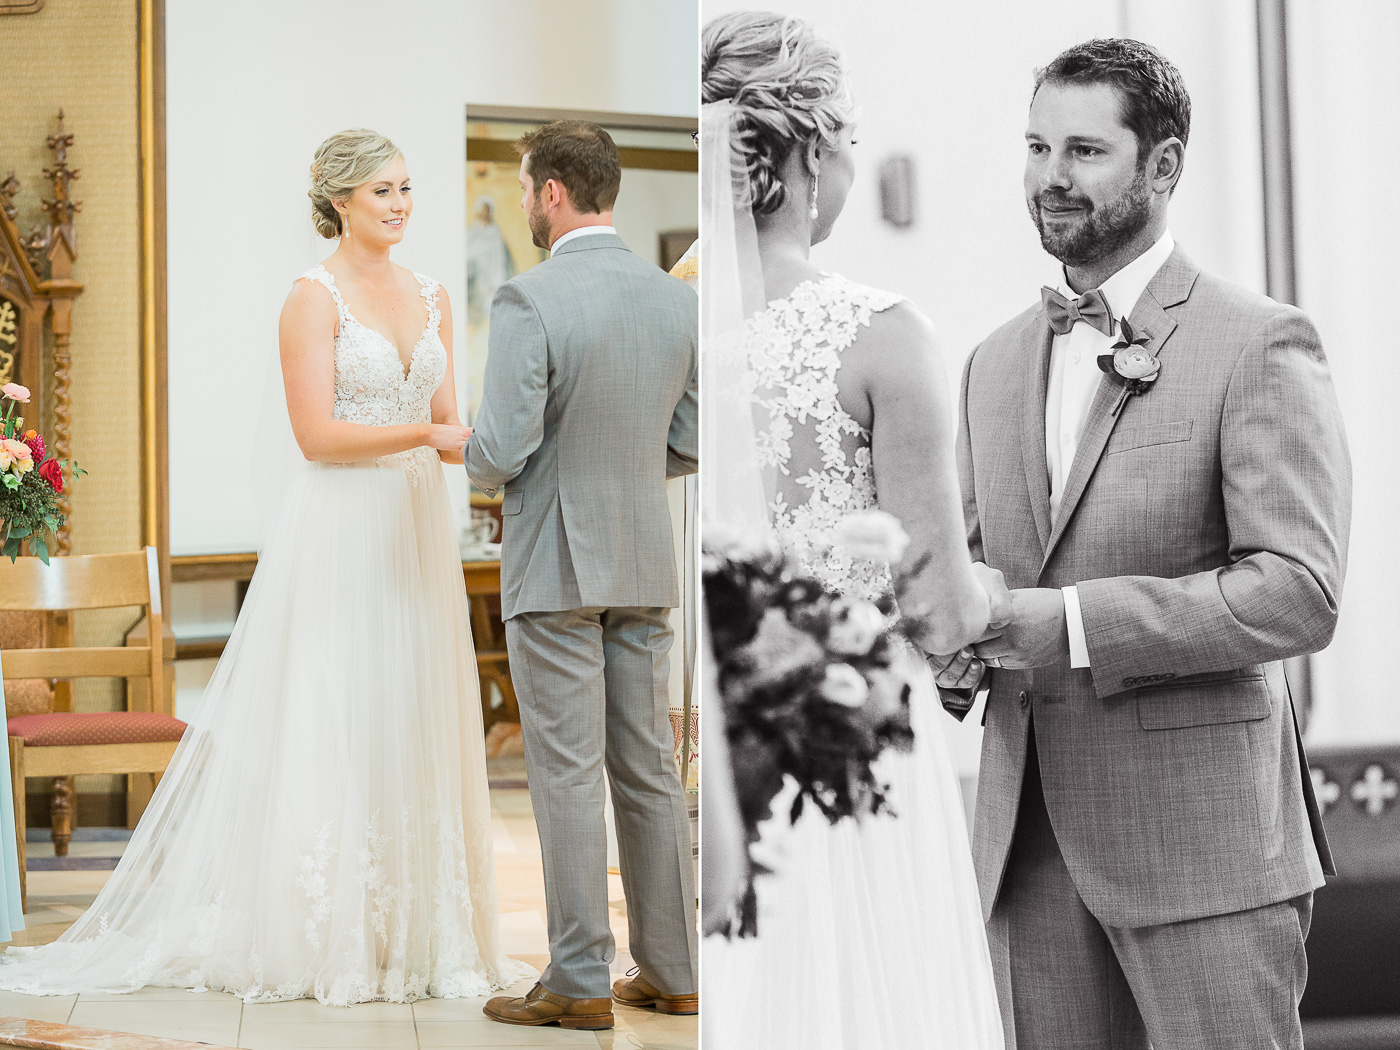 St Mary's Cathedral Wedding in Cheyenne Wyoming by Megan Lee Photography